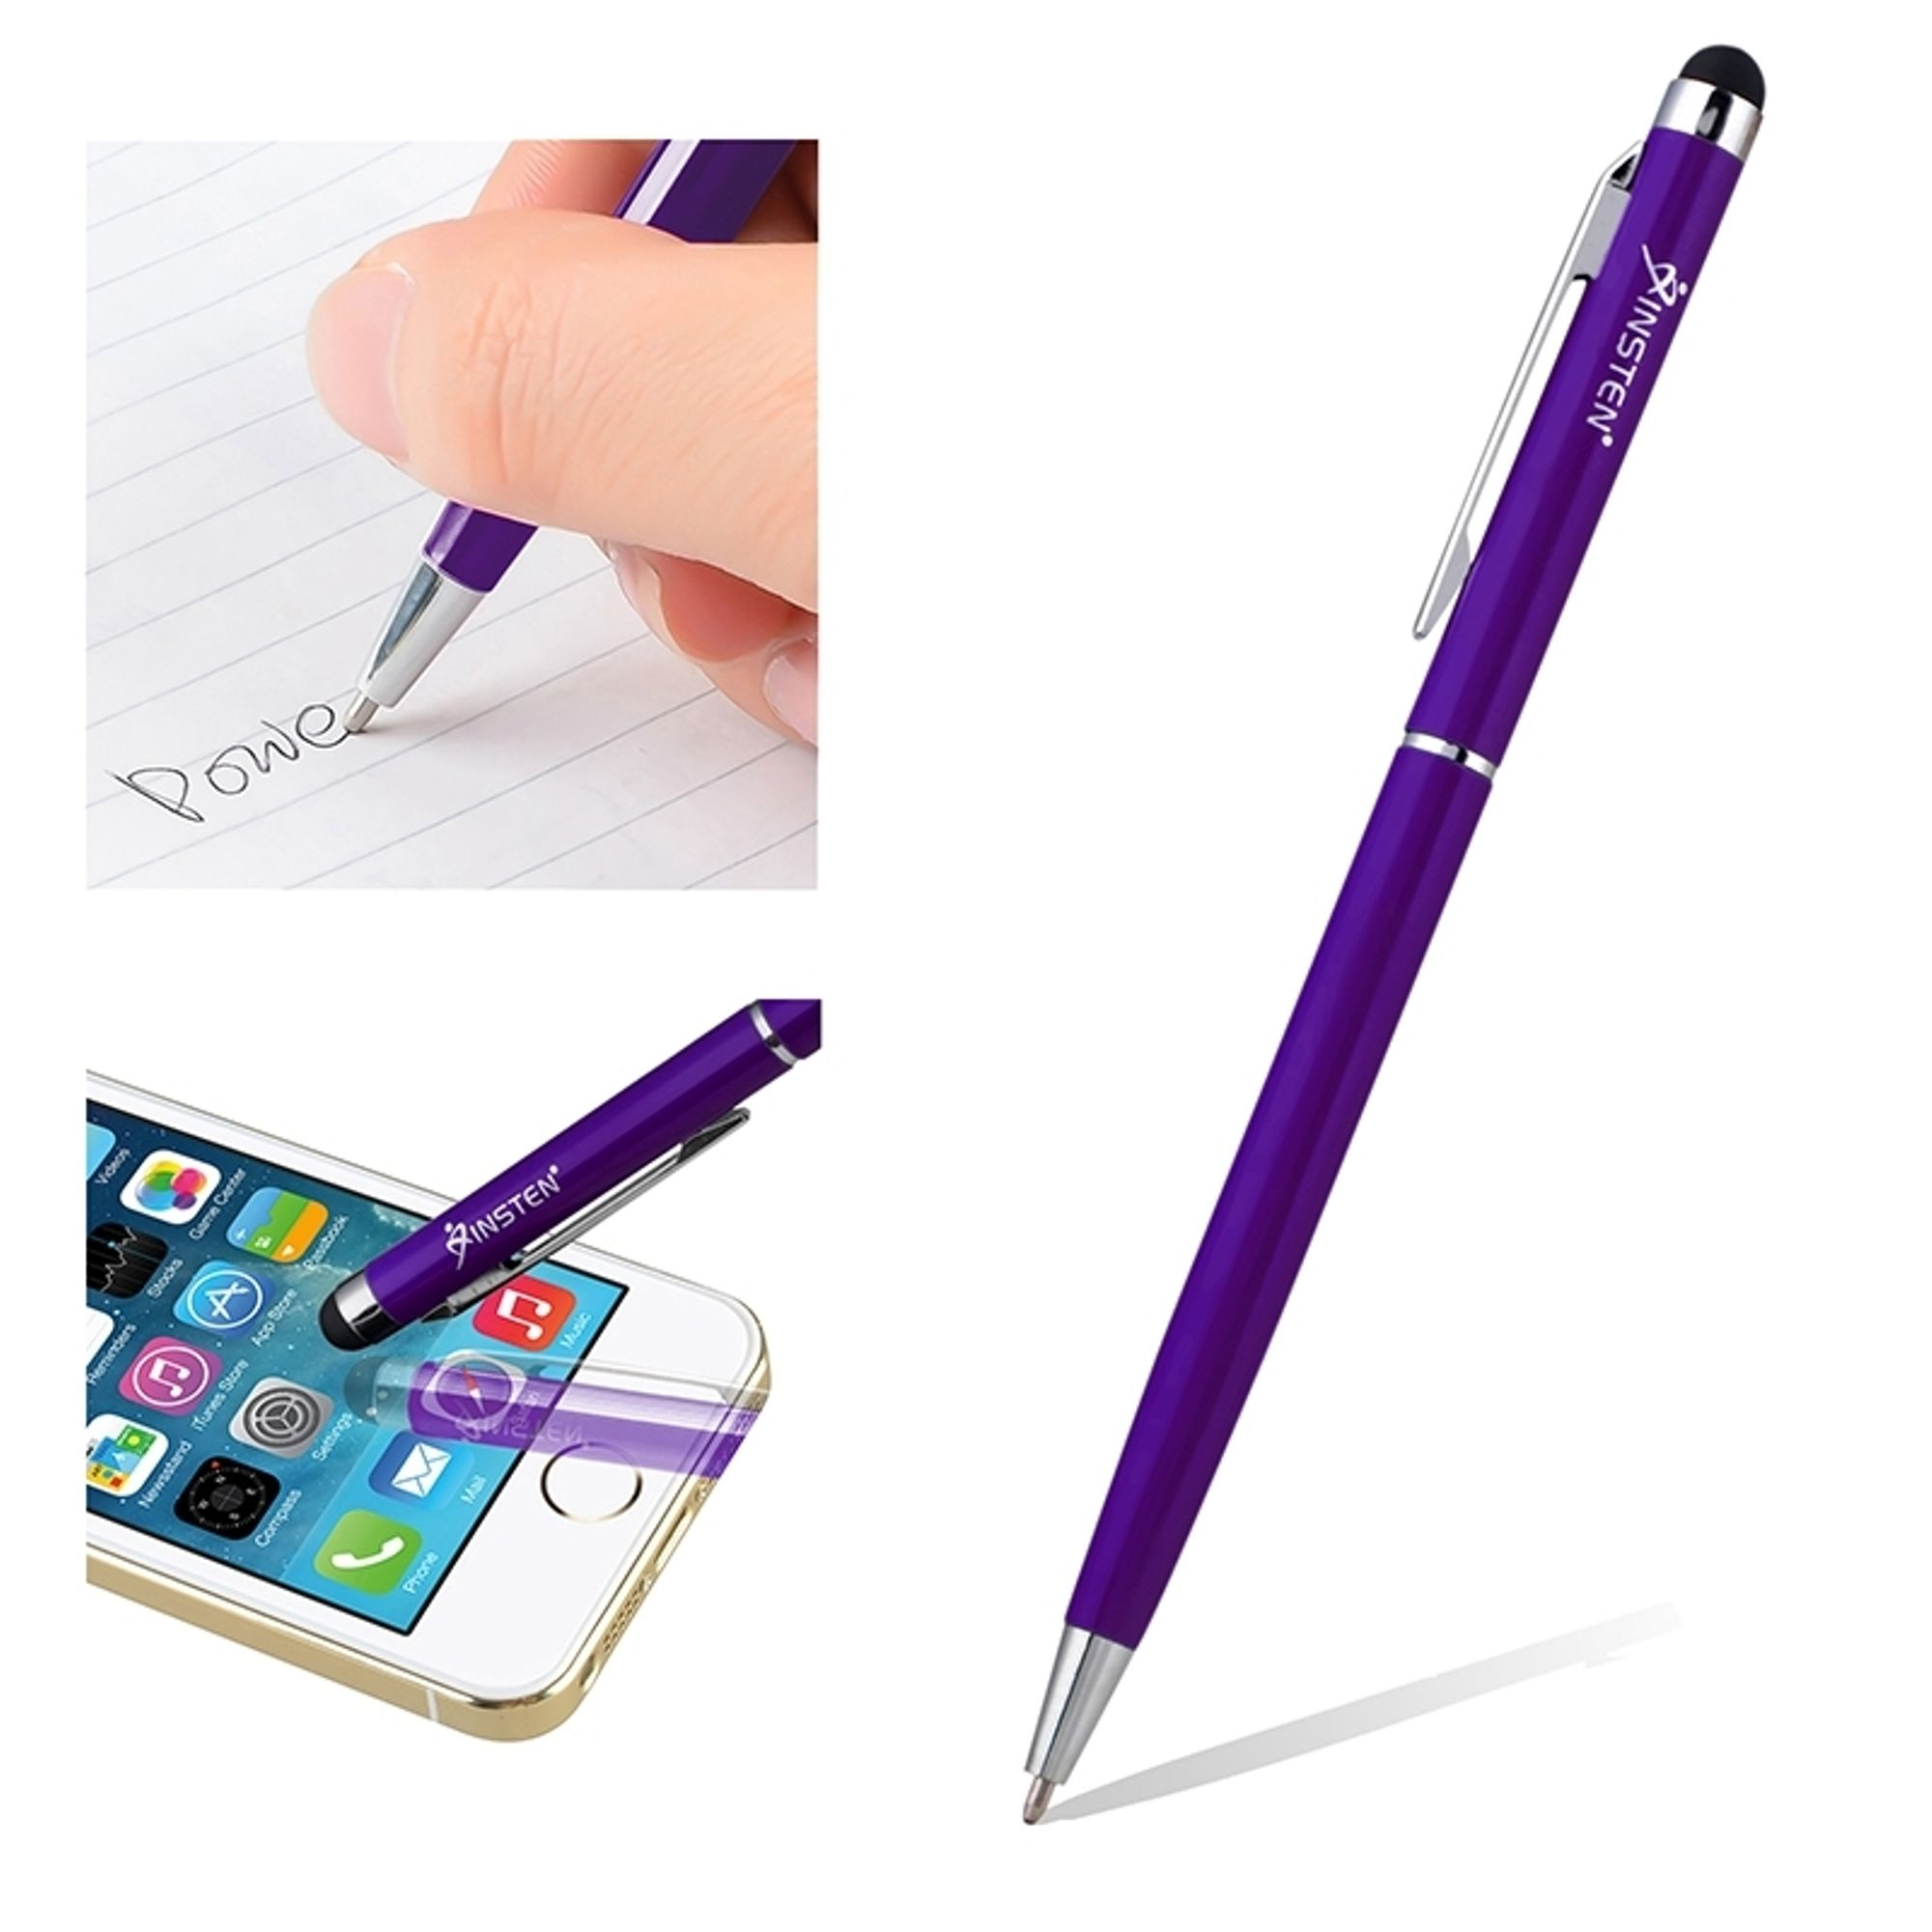 Insten Universal Purple 2in1 Capacitive Touch Screen Stylus with Ball Point Pen For Mobile Cell Phone iPhone XS XR XS Max X 8 7 6 Plus SE 5s iPad Air Pro Mini Tablet iPod Samsung Galaxy 4 S9 S9+